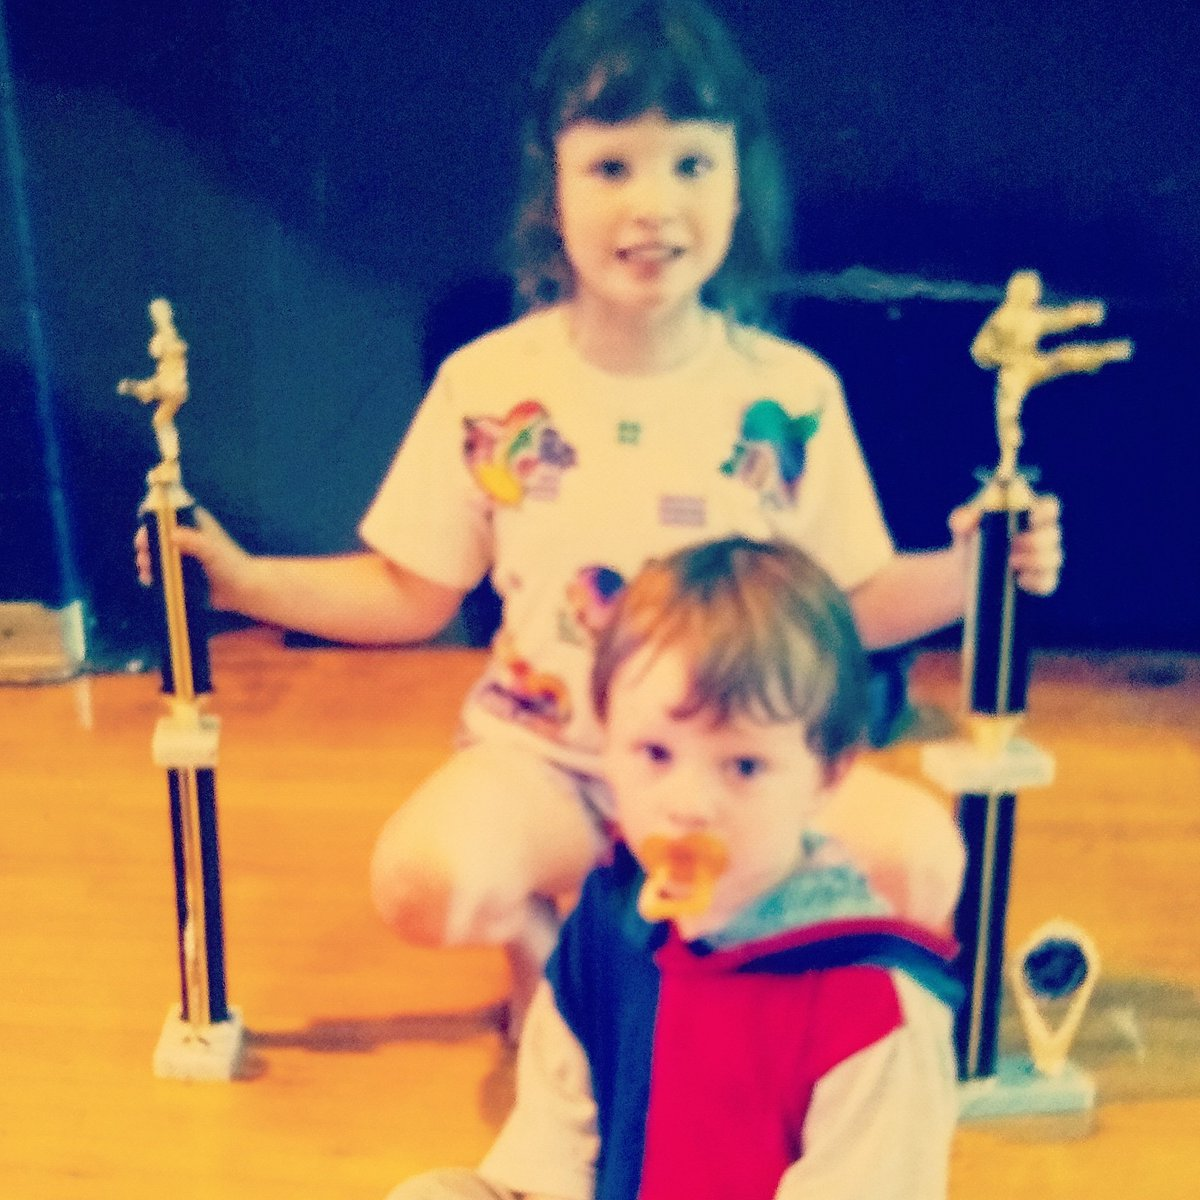 #tbt #throwbackthursday #2ndplace in #sparring & #forms #thisisme #winning #kungfu #hopkido #tournament #karate #trophies #DARE #borntofight #borntowin #whoiam #girlpower #girlsrule #girlsdoitbetter #girlsgeneration #brotherandsister #family #90skid #fightlikeagirl #win